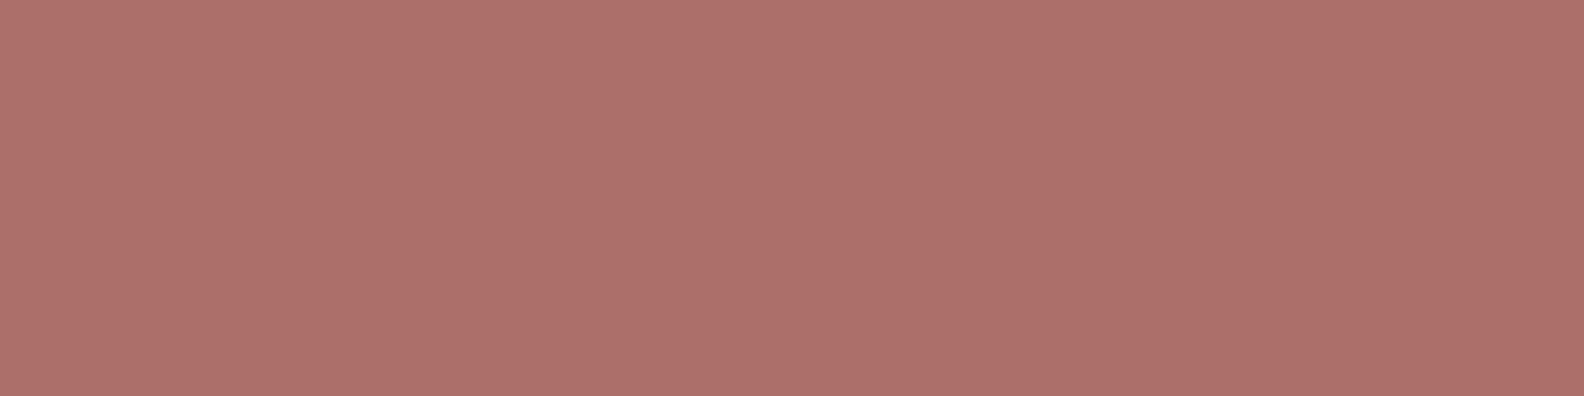 1584x396 Copper Penny Solid Color Background